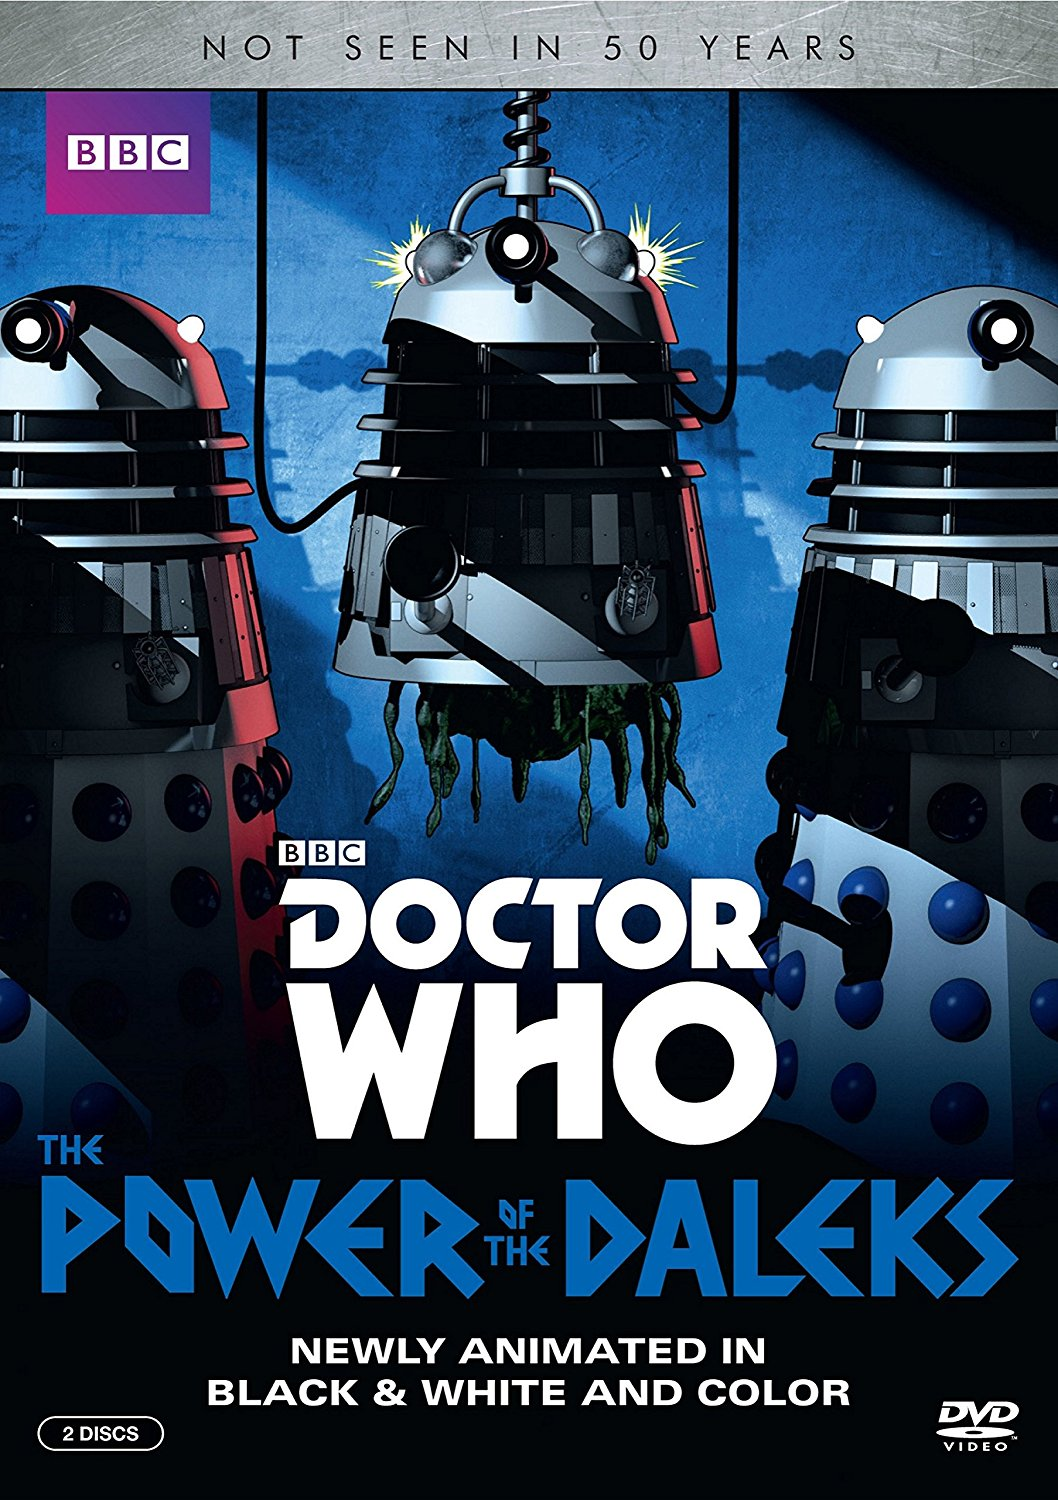 DVD 030: The Power of the Daleks